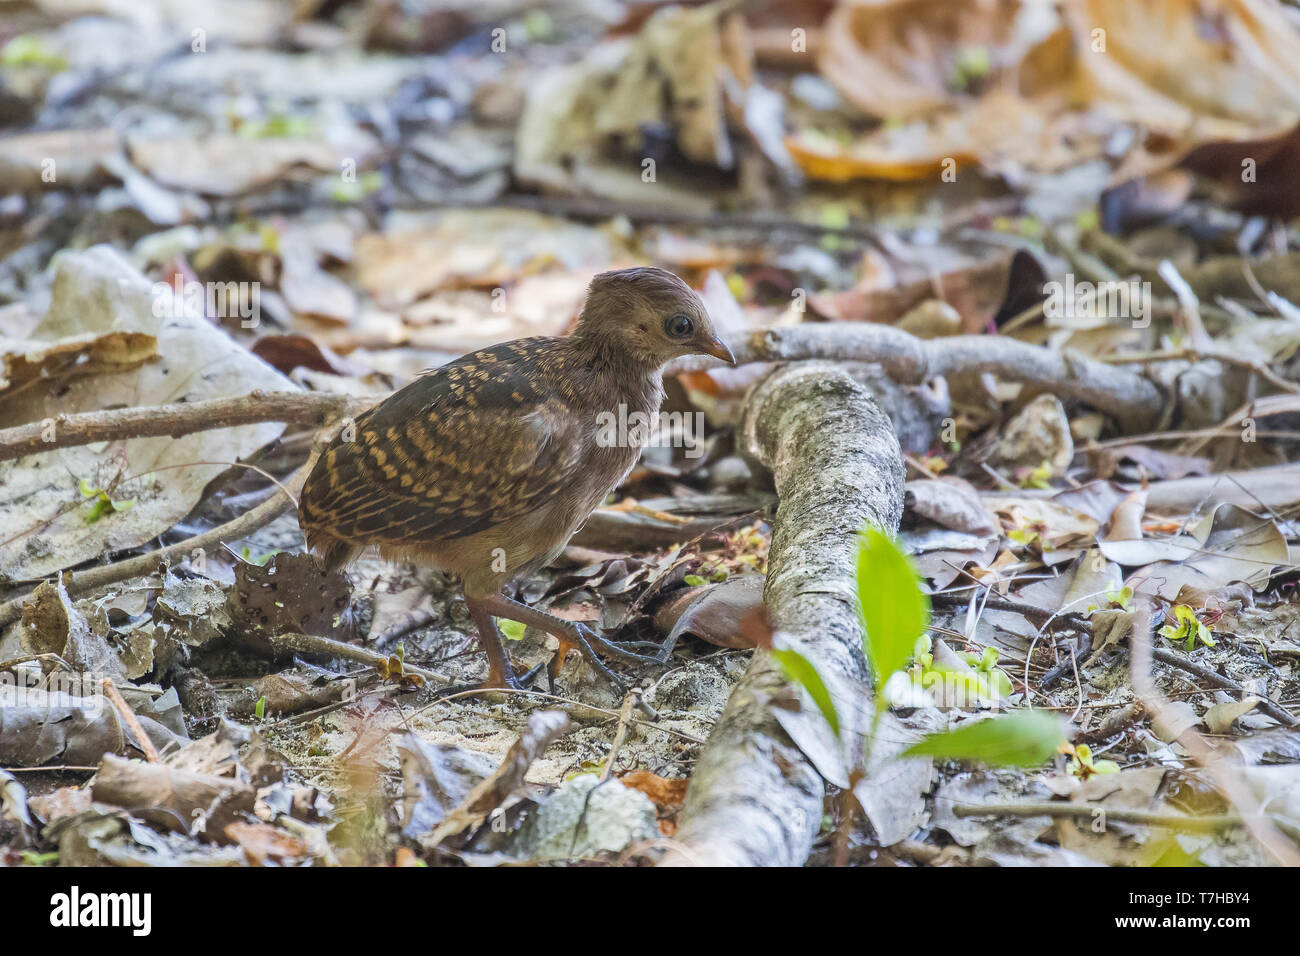 Micronesian Scrubfowl (Megapodius laperouse senex) chick on Palau Island (west Caroline Islands). A species that is rare, localised and in danger of g - Stock Image